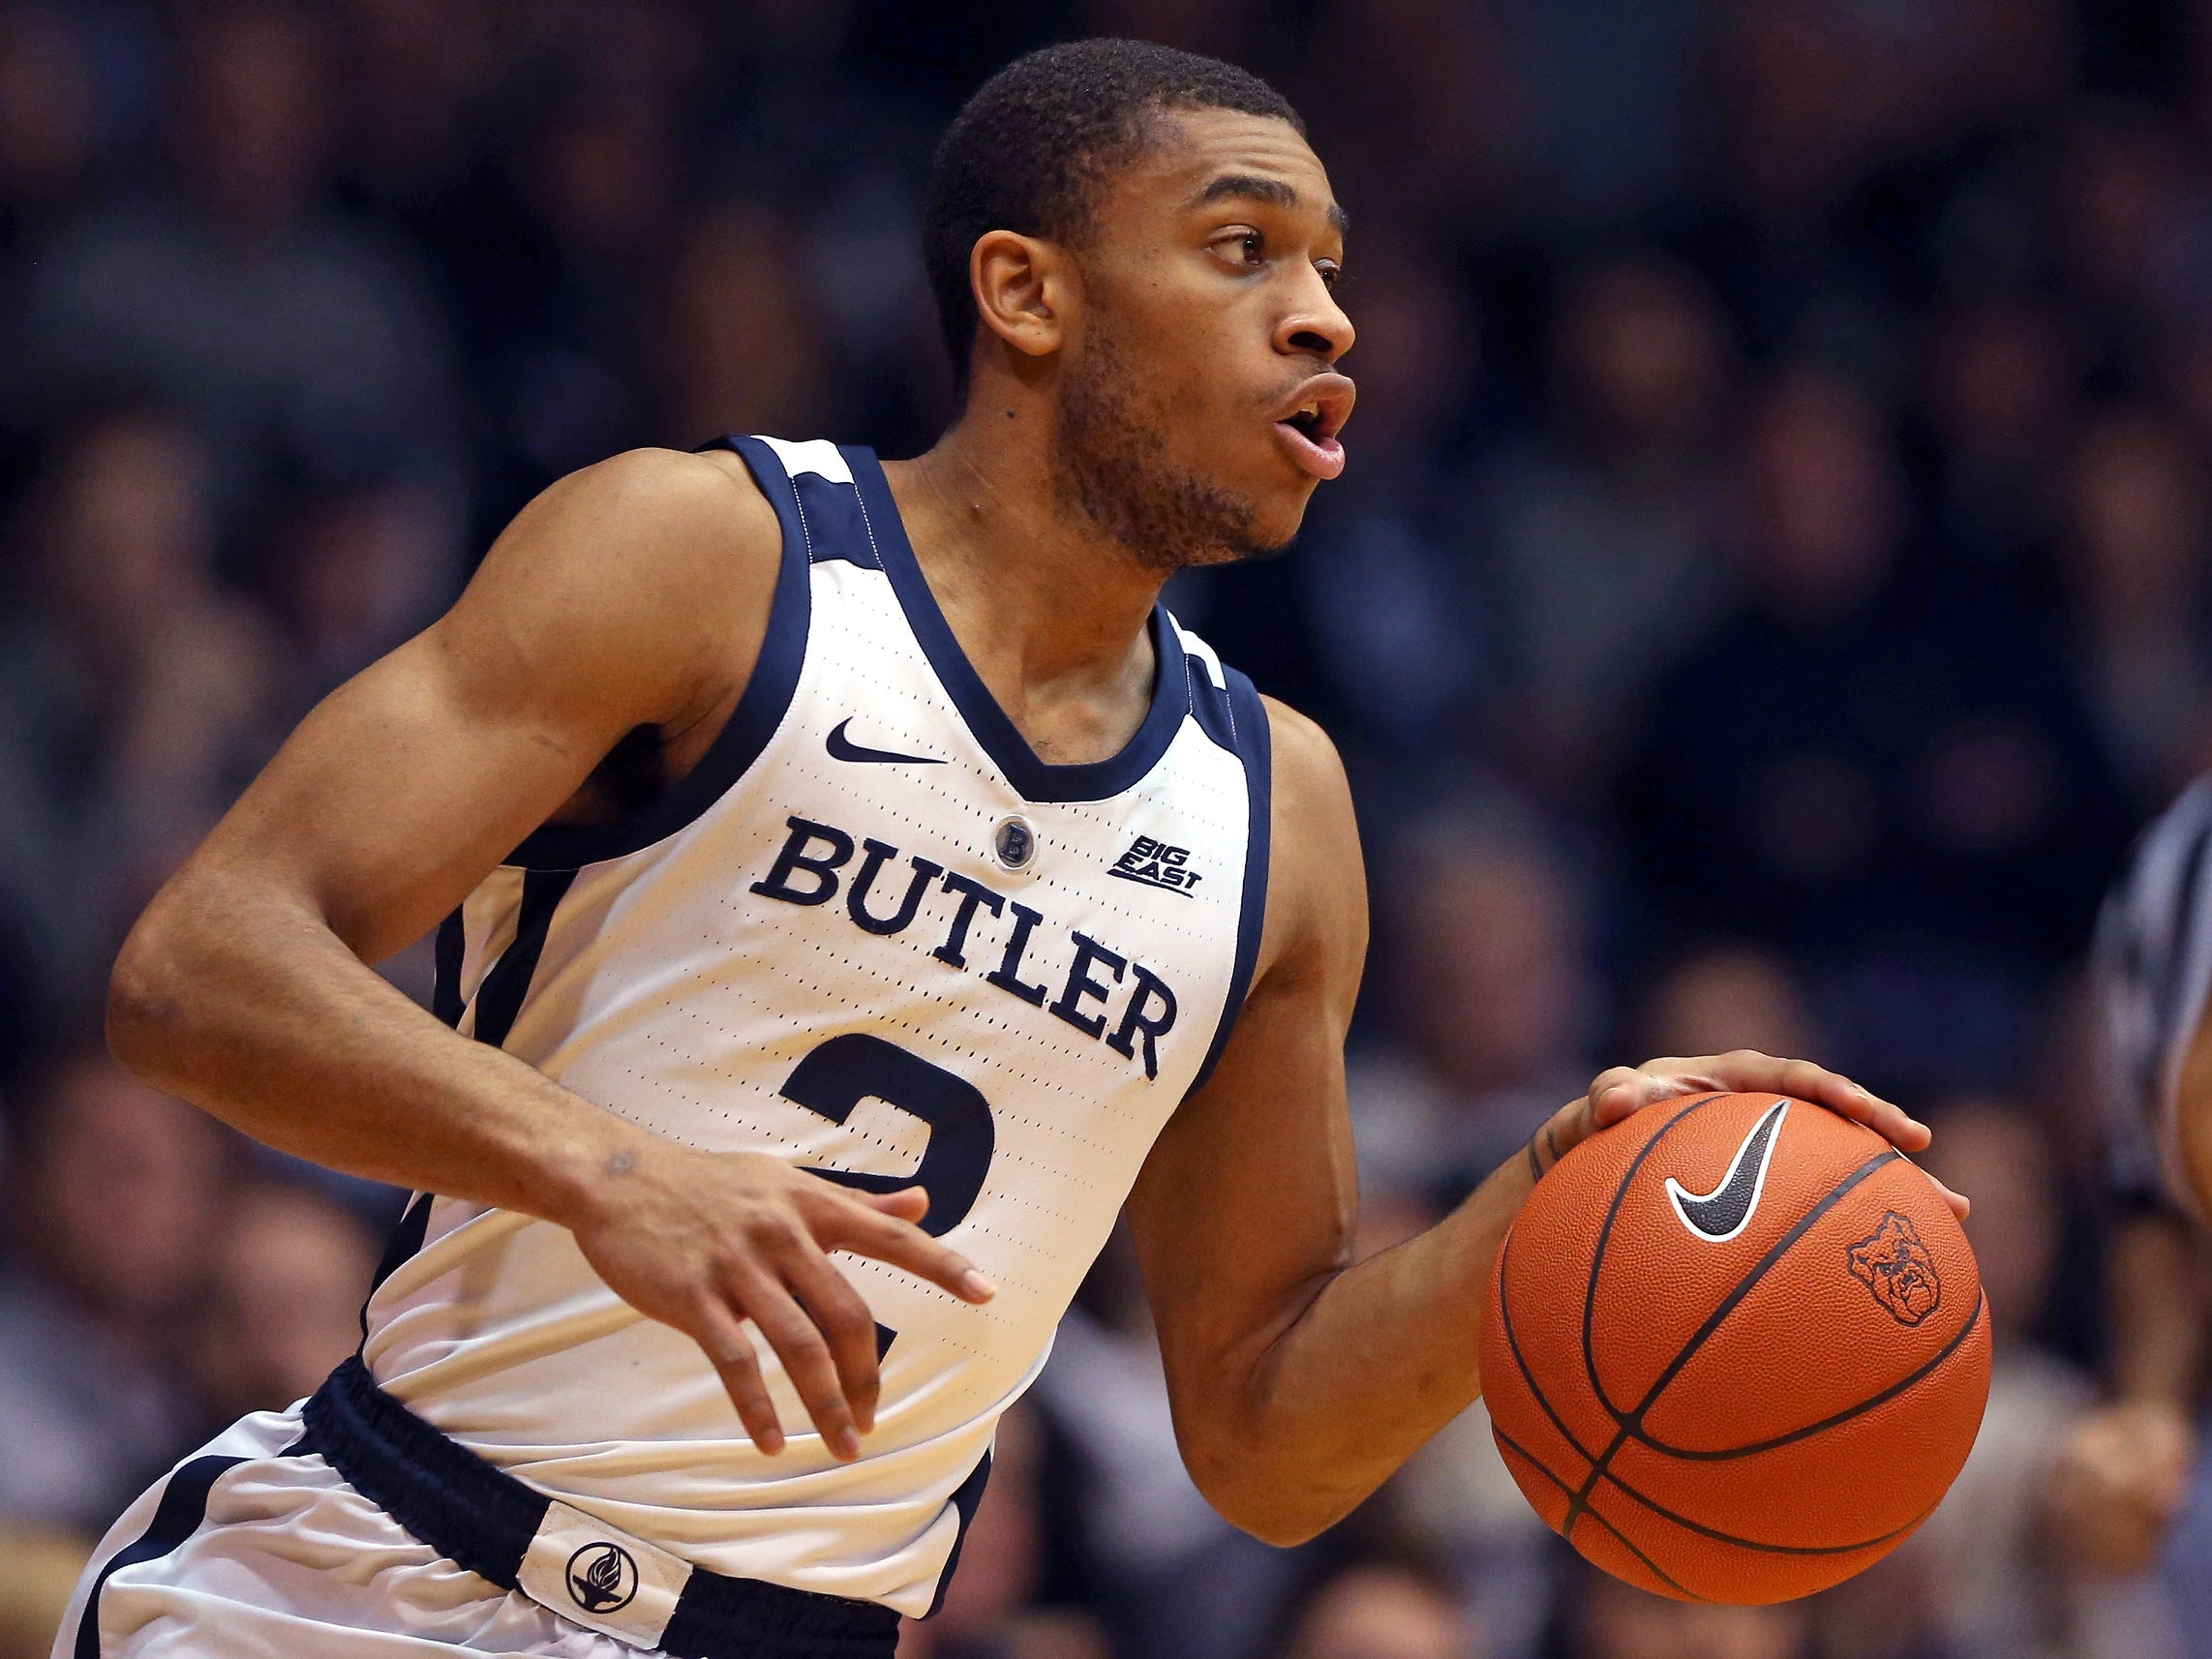 Butler Bulldogs guard Aaron Thompson (2) carries the ball against the Georgetown Hoyas during the first half of game action between Butler University and Georgetown University, at Hinkle Fieldhouse in Indianapolis, Indiana on Wednesday, Jan. 2, 2019.